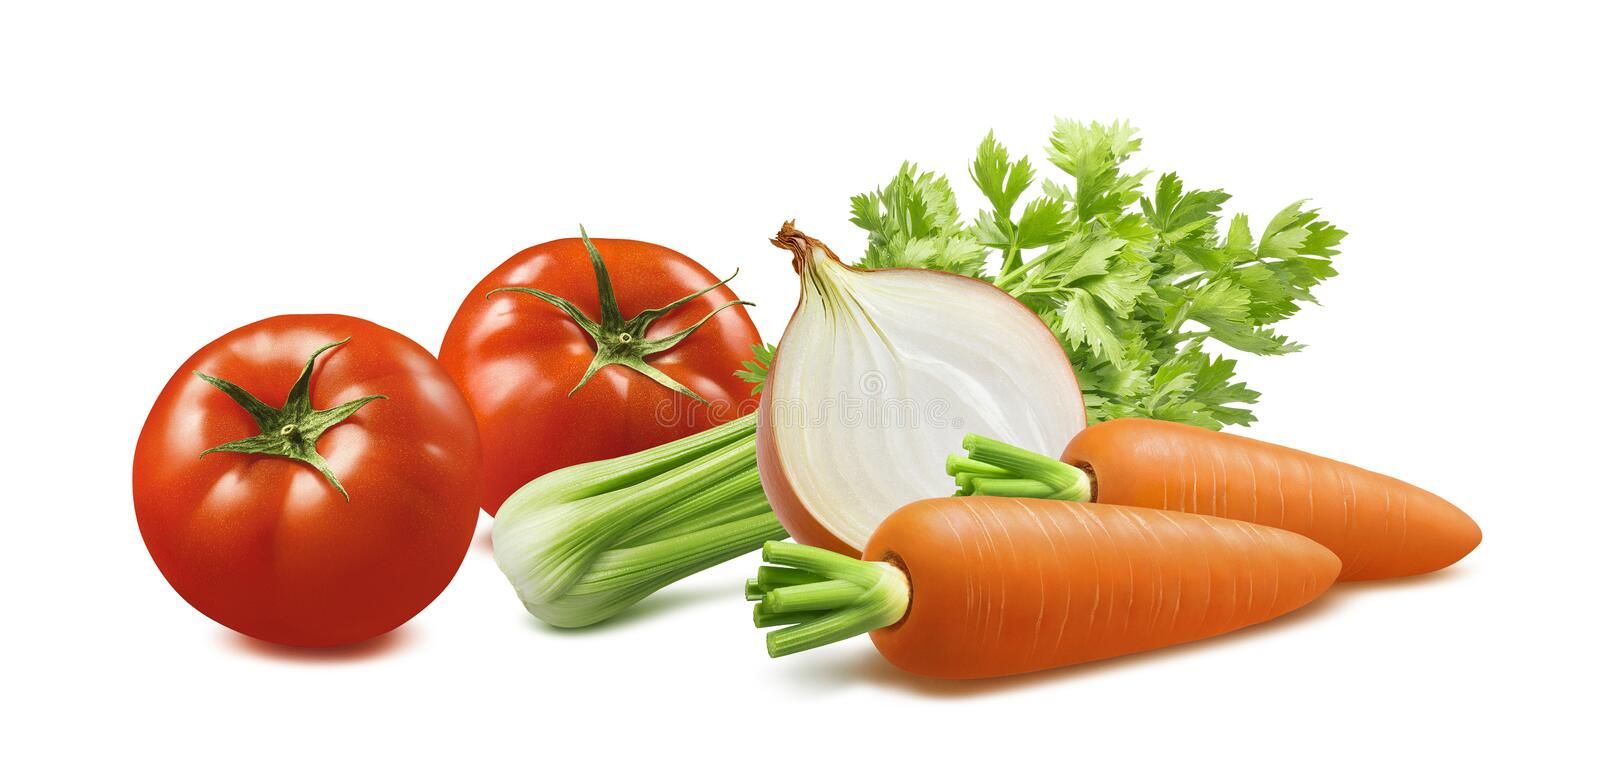 Celery, tomato, carrot, onion isolated on white background royalty free stock photo